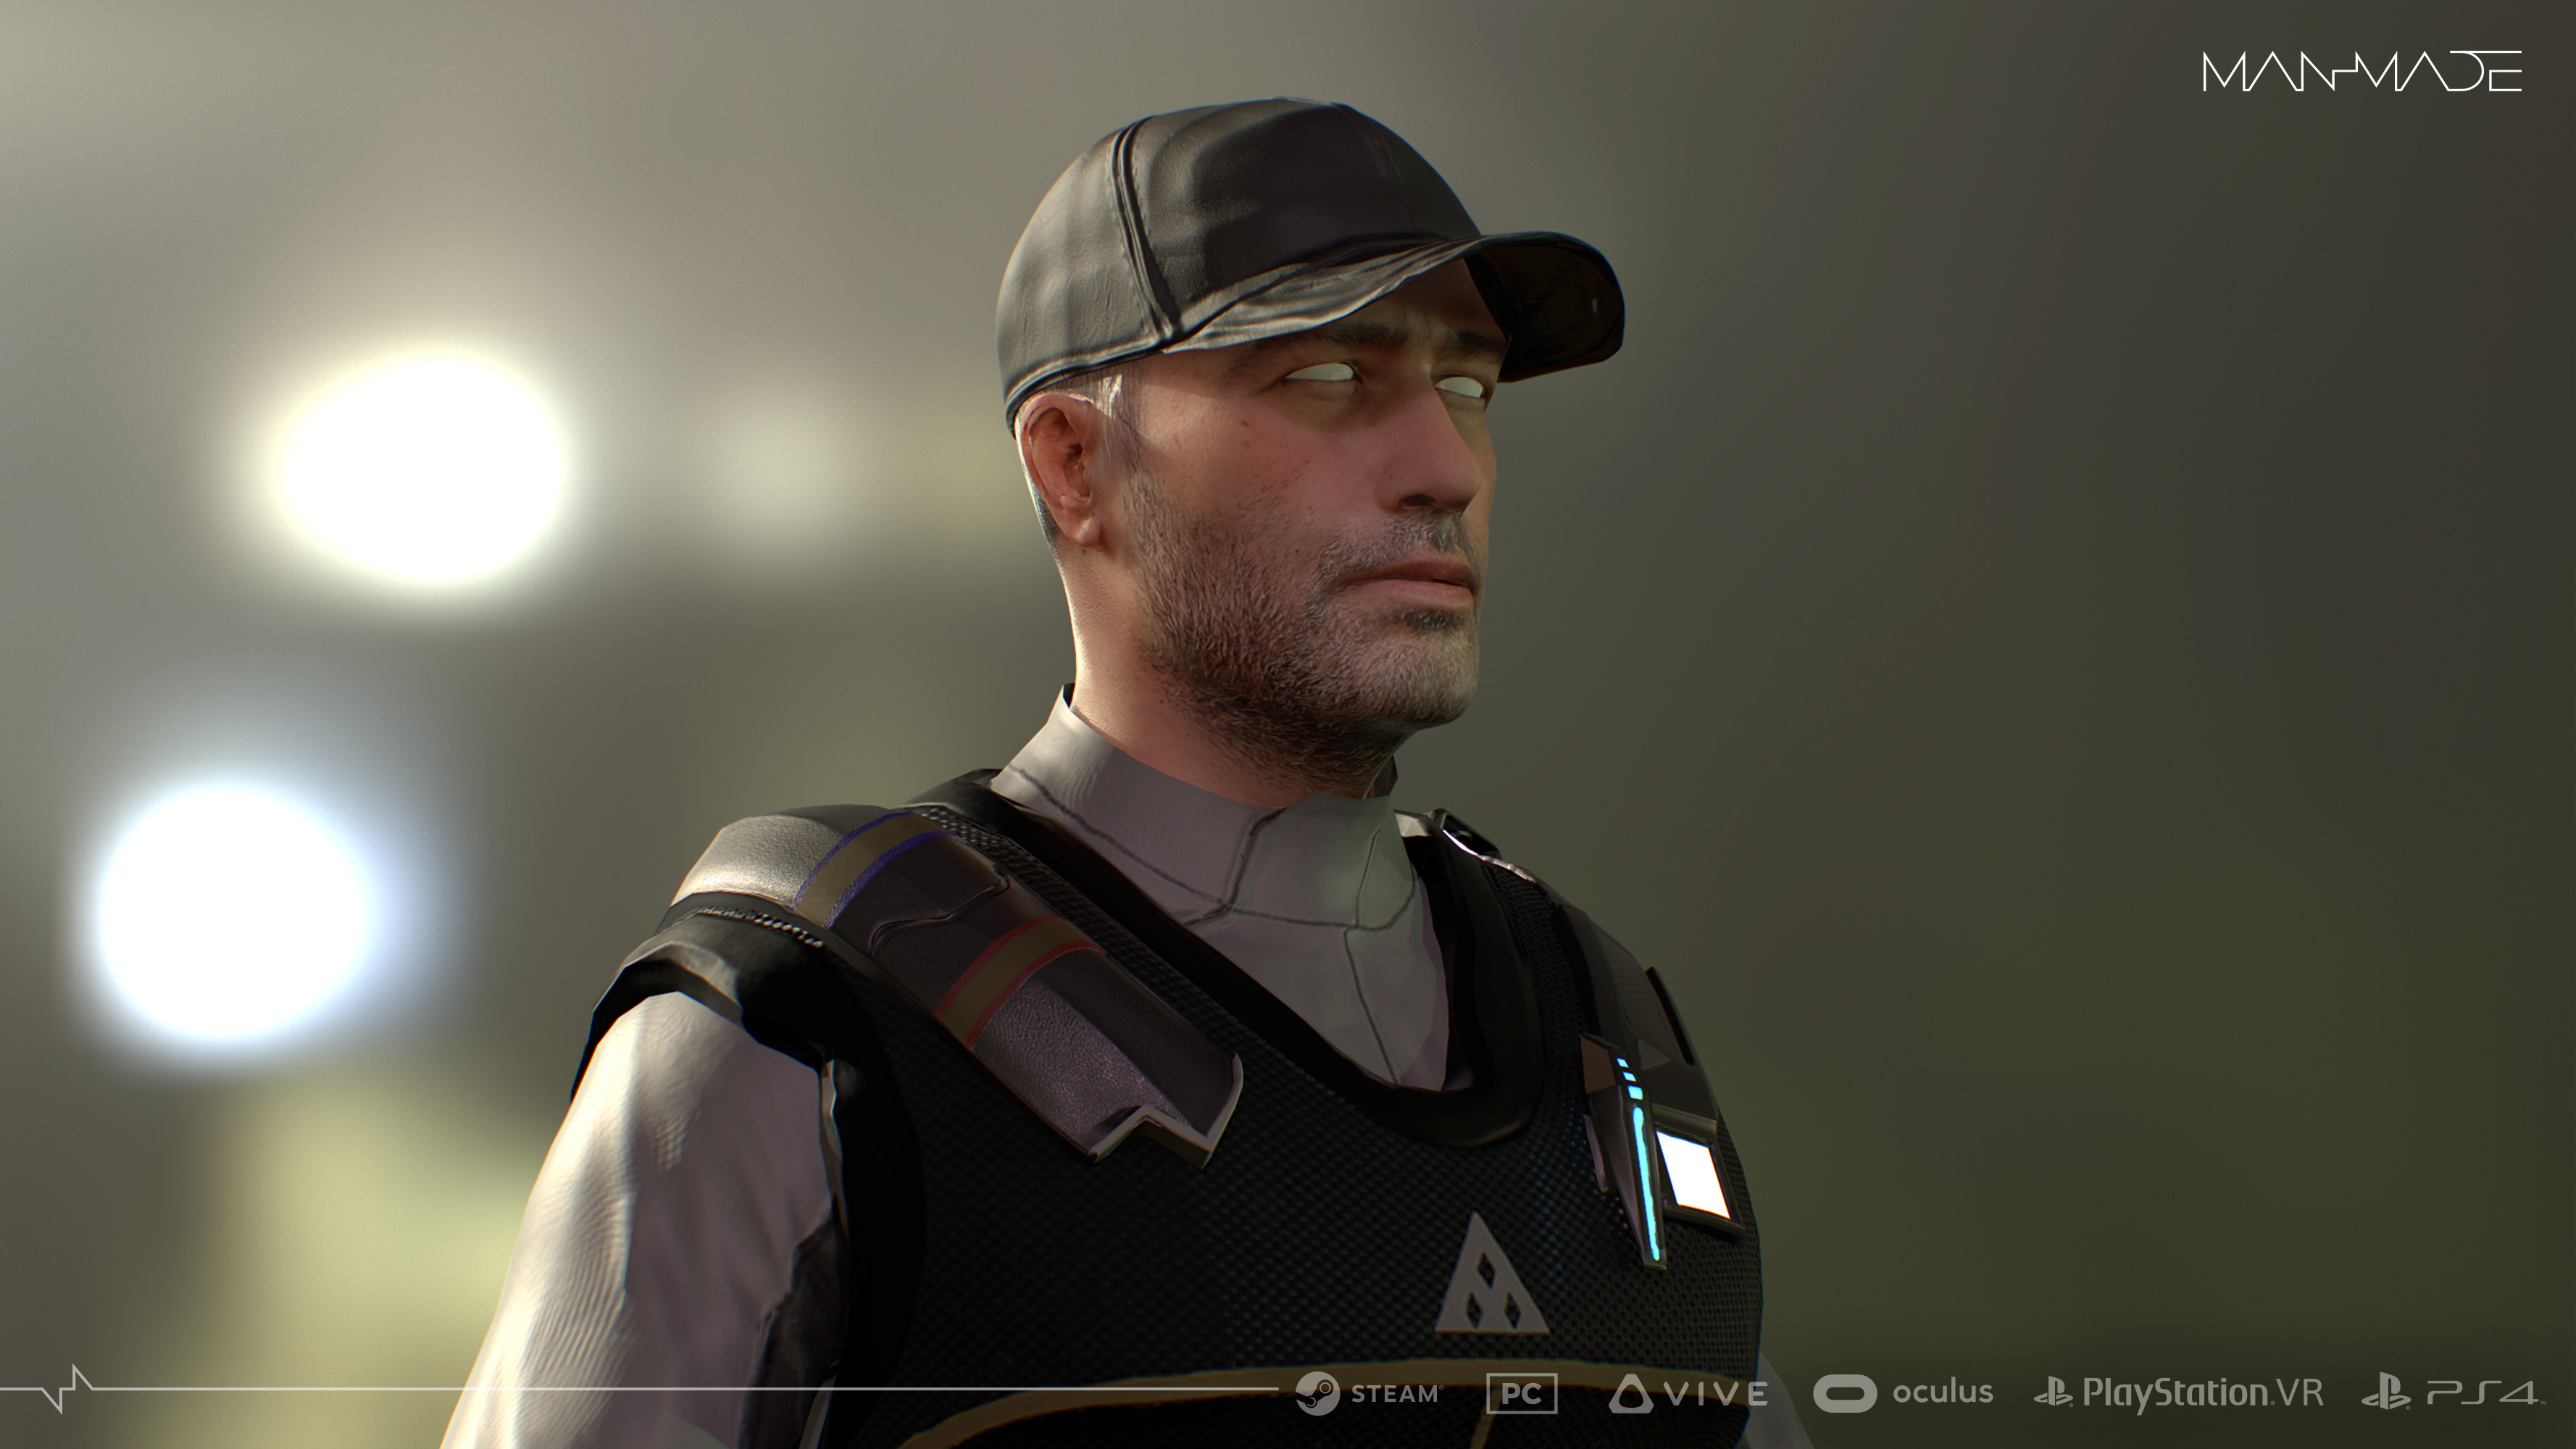 Security2 Marmoset Render for Materials and Mood